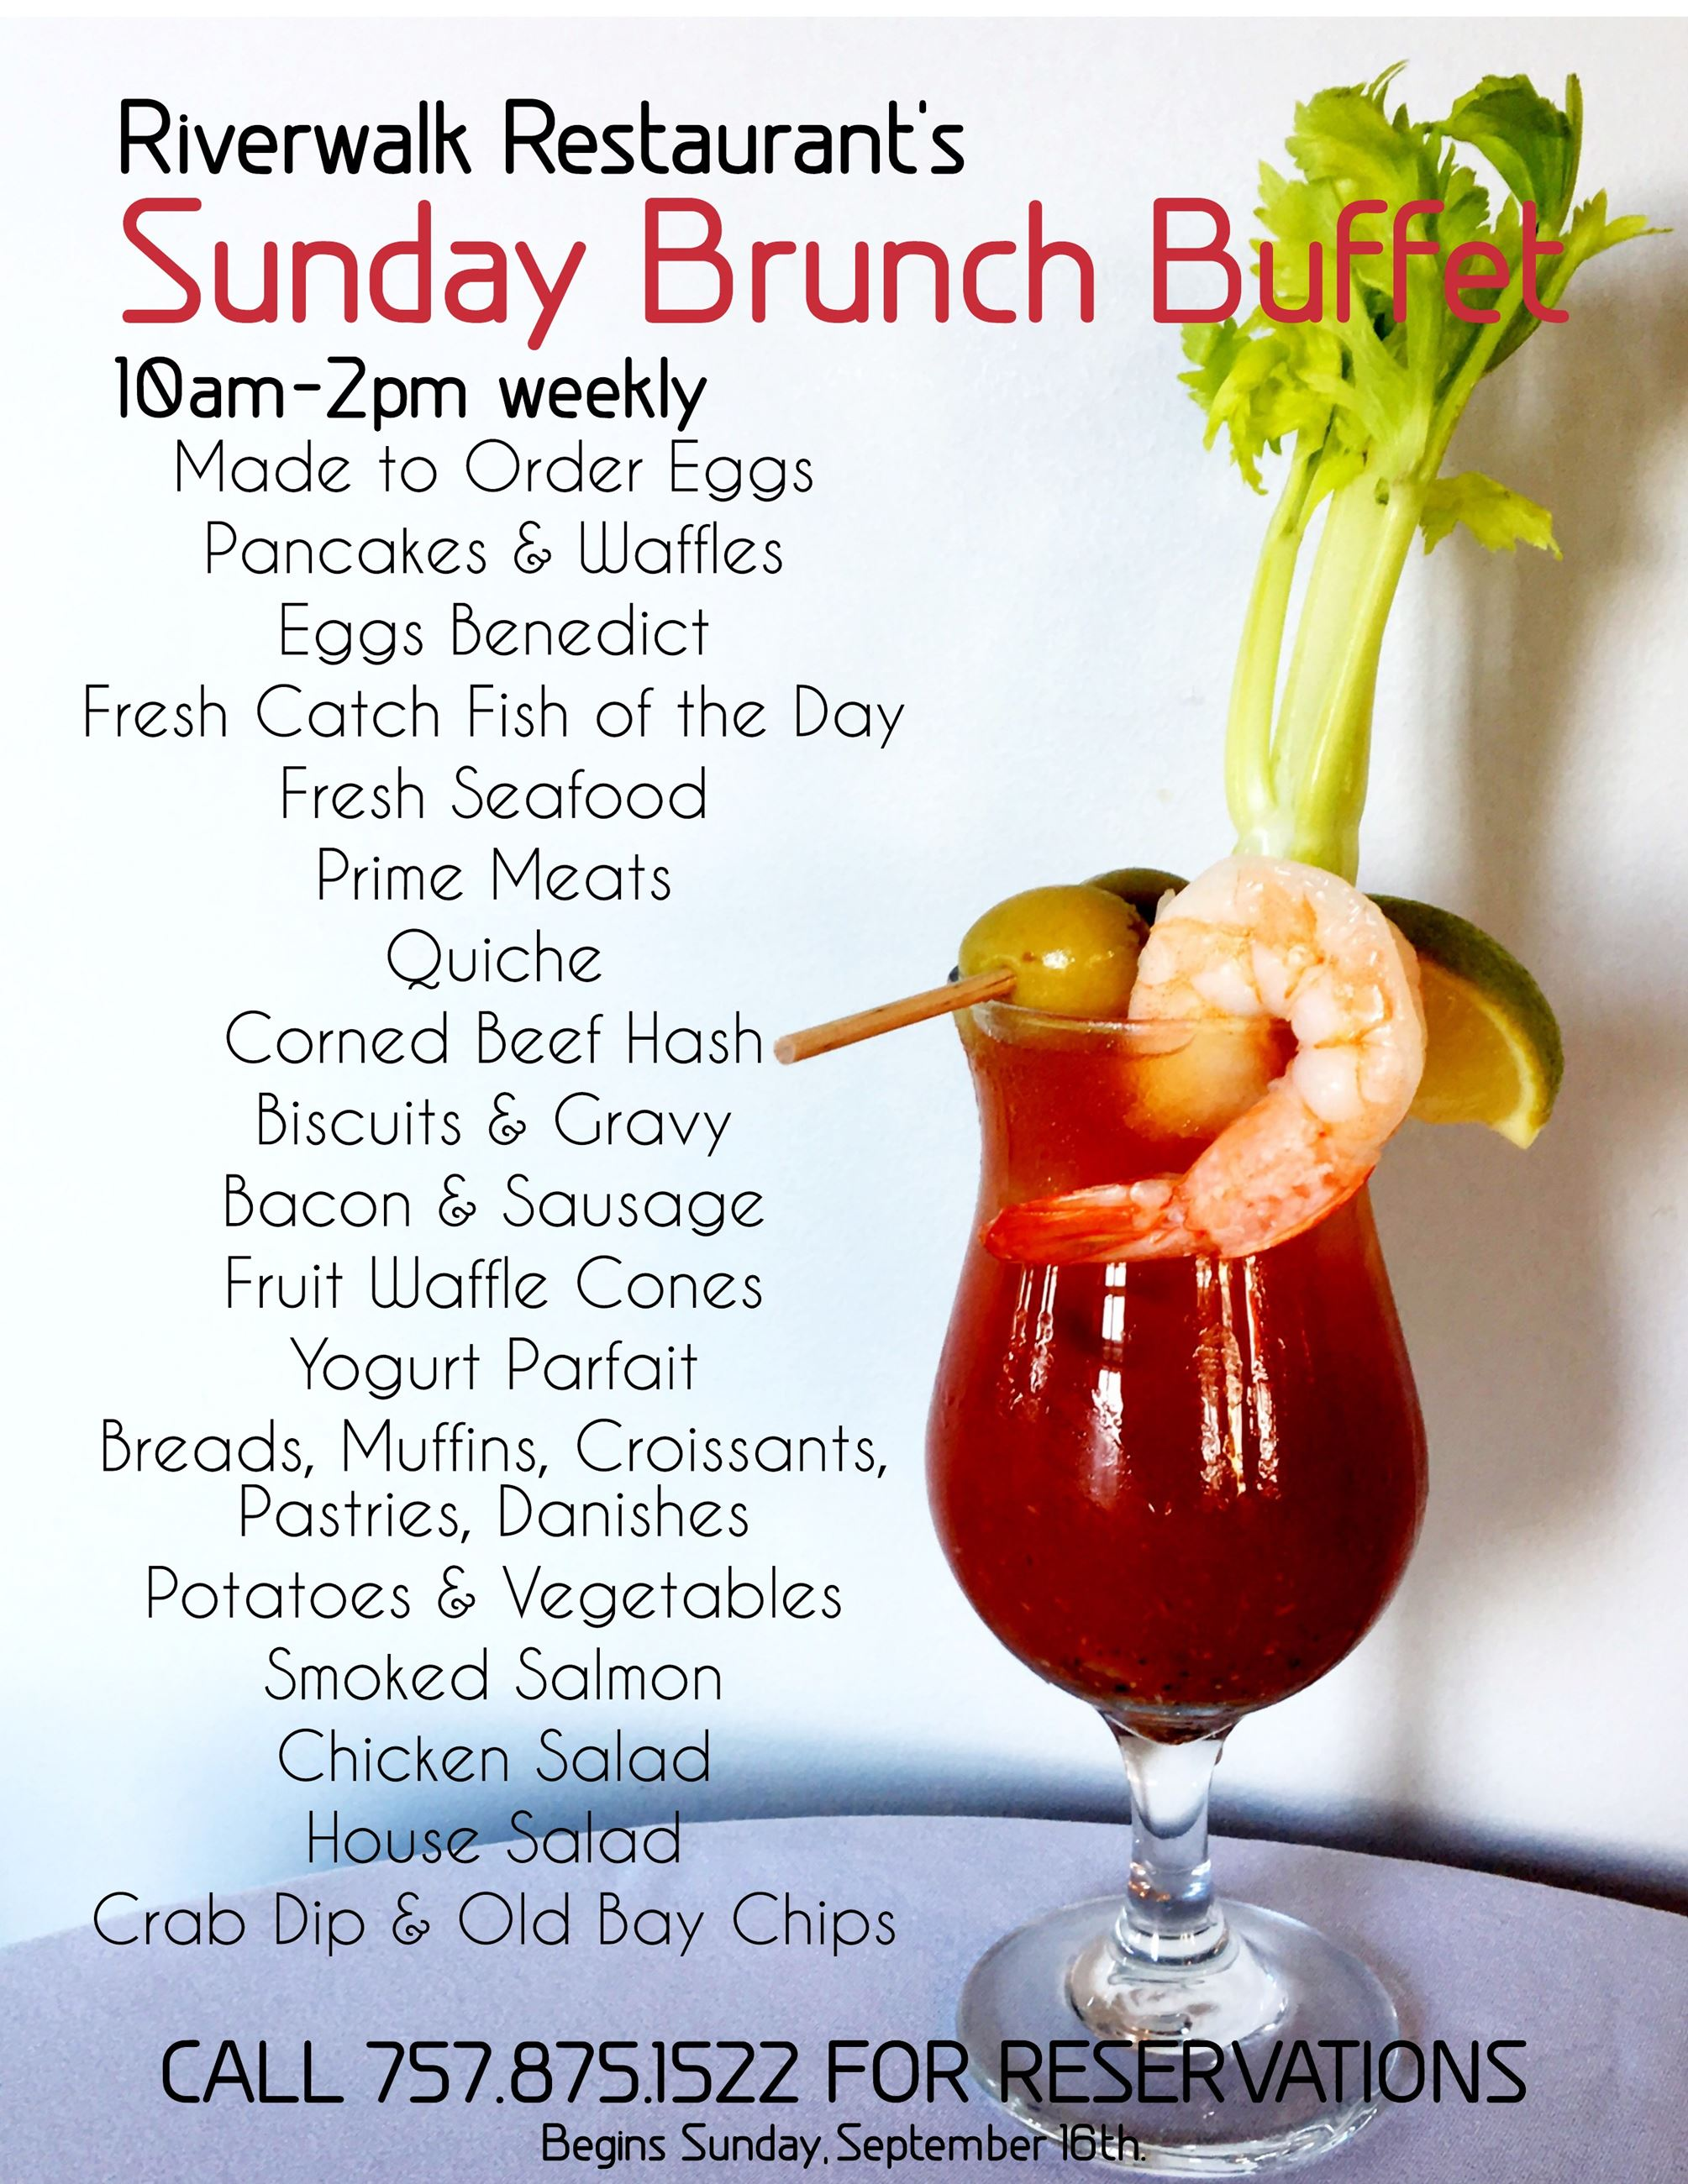 Riverwalk Sunday Brunch Menu. Call 757-875-1522 for reservations.